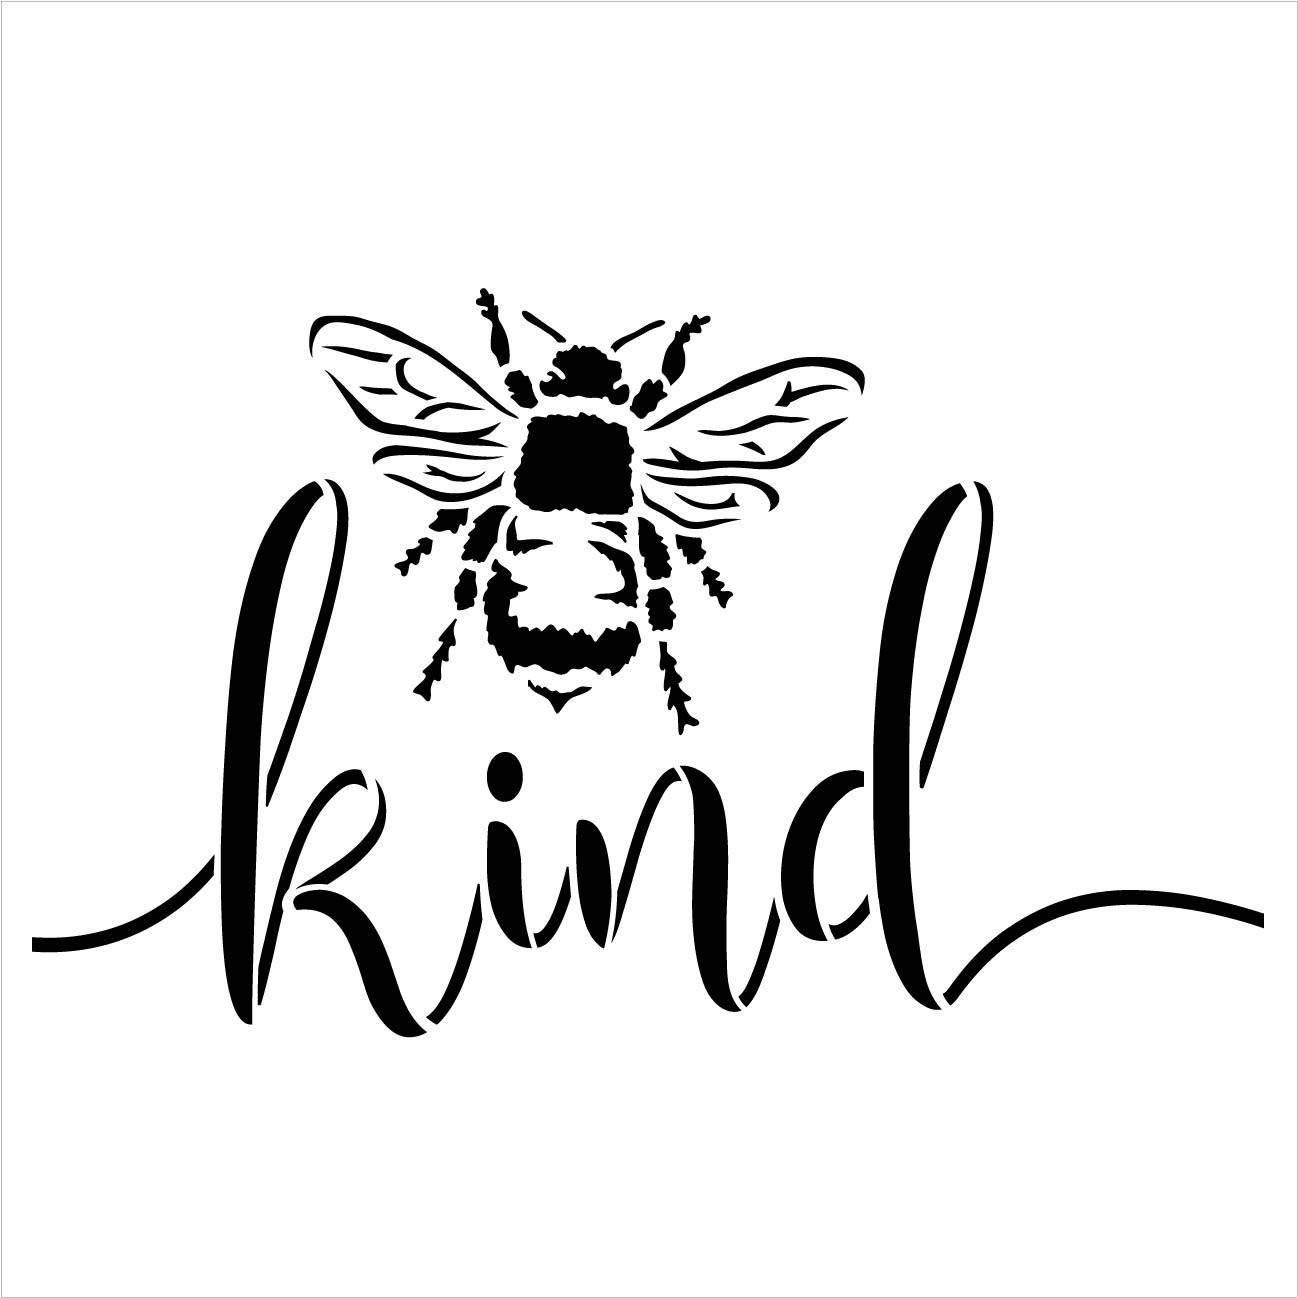 Bee Kind Stencil by StudioR12 | DIY Farmhouse Bumblebee Home & Classroom Decor | Spring Script Inspirational Word Art | Craft & Paint Wood Signs | Reusable Mylar Template | Select Size